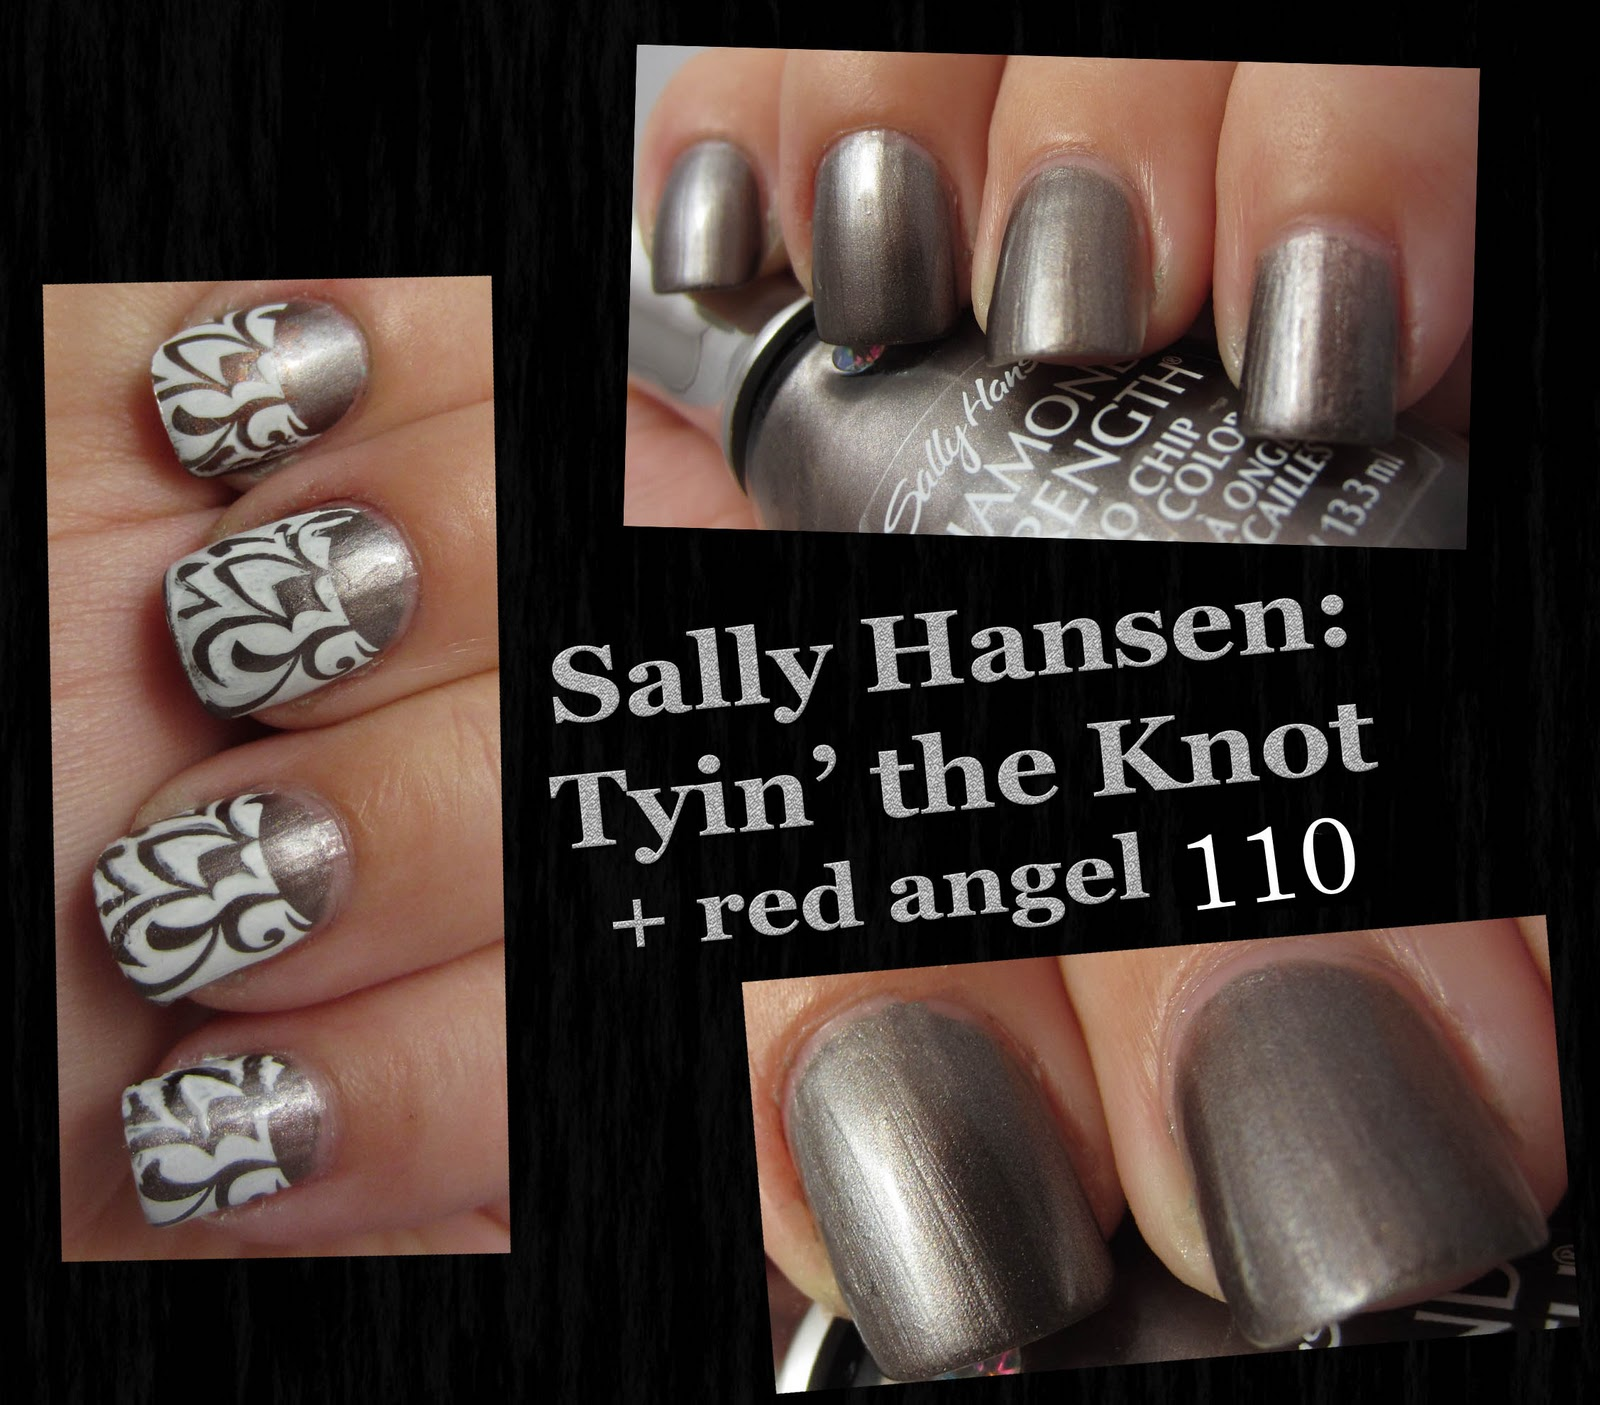 used two coats of Sally Hansen Tyin' the Knot; a frosty gunmetal taupe